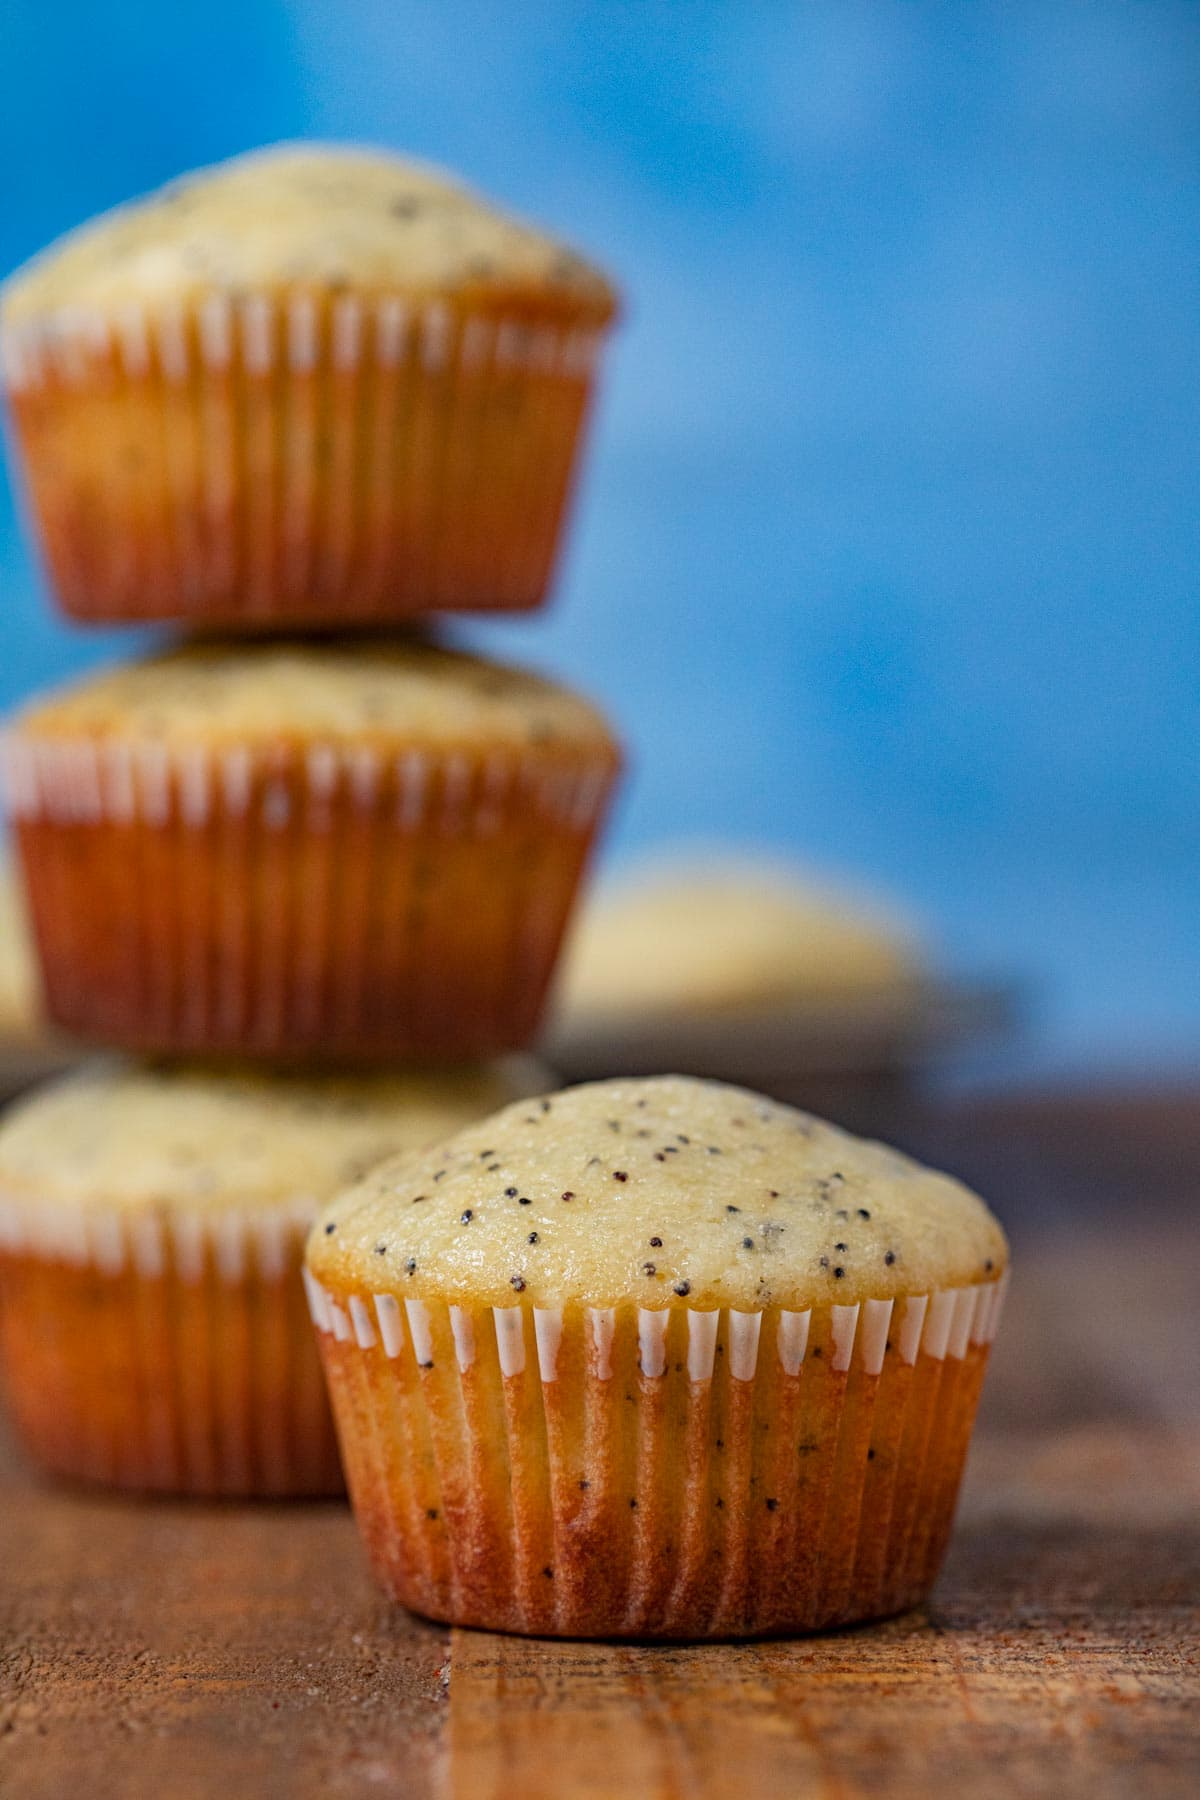 Poppy Seed Muffin on cutting board